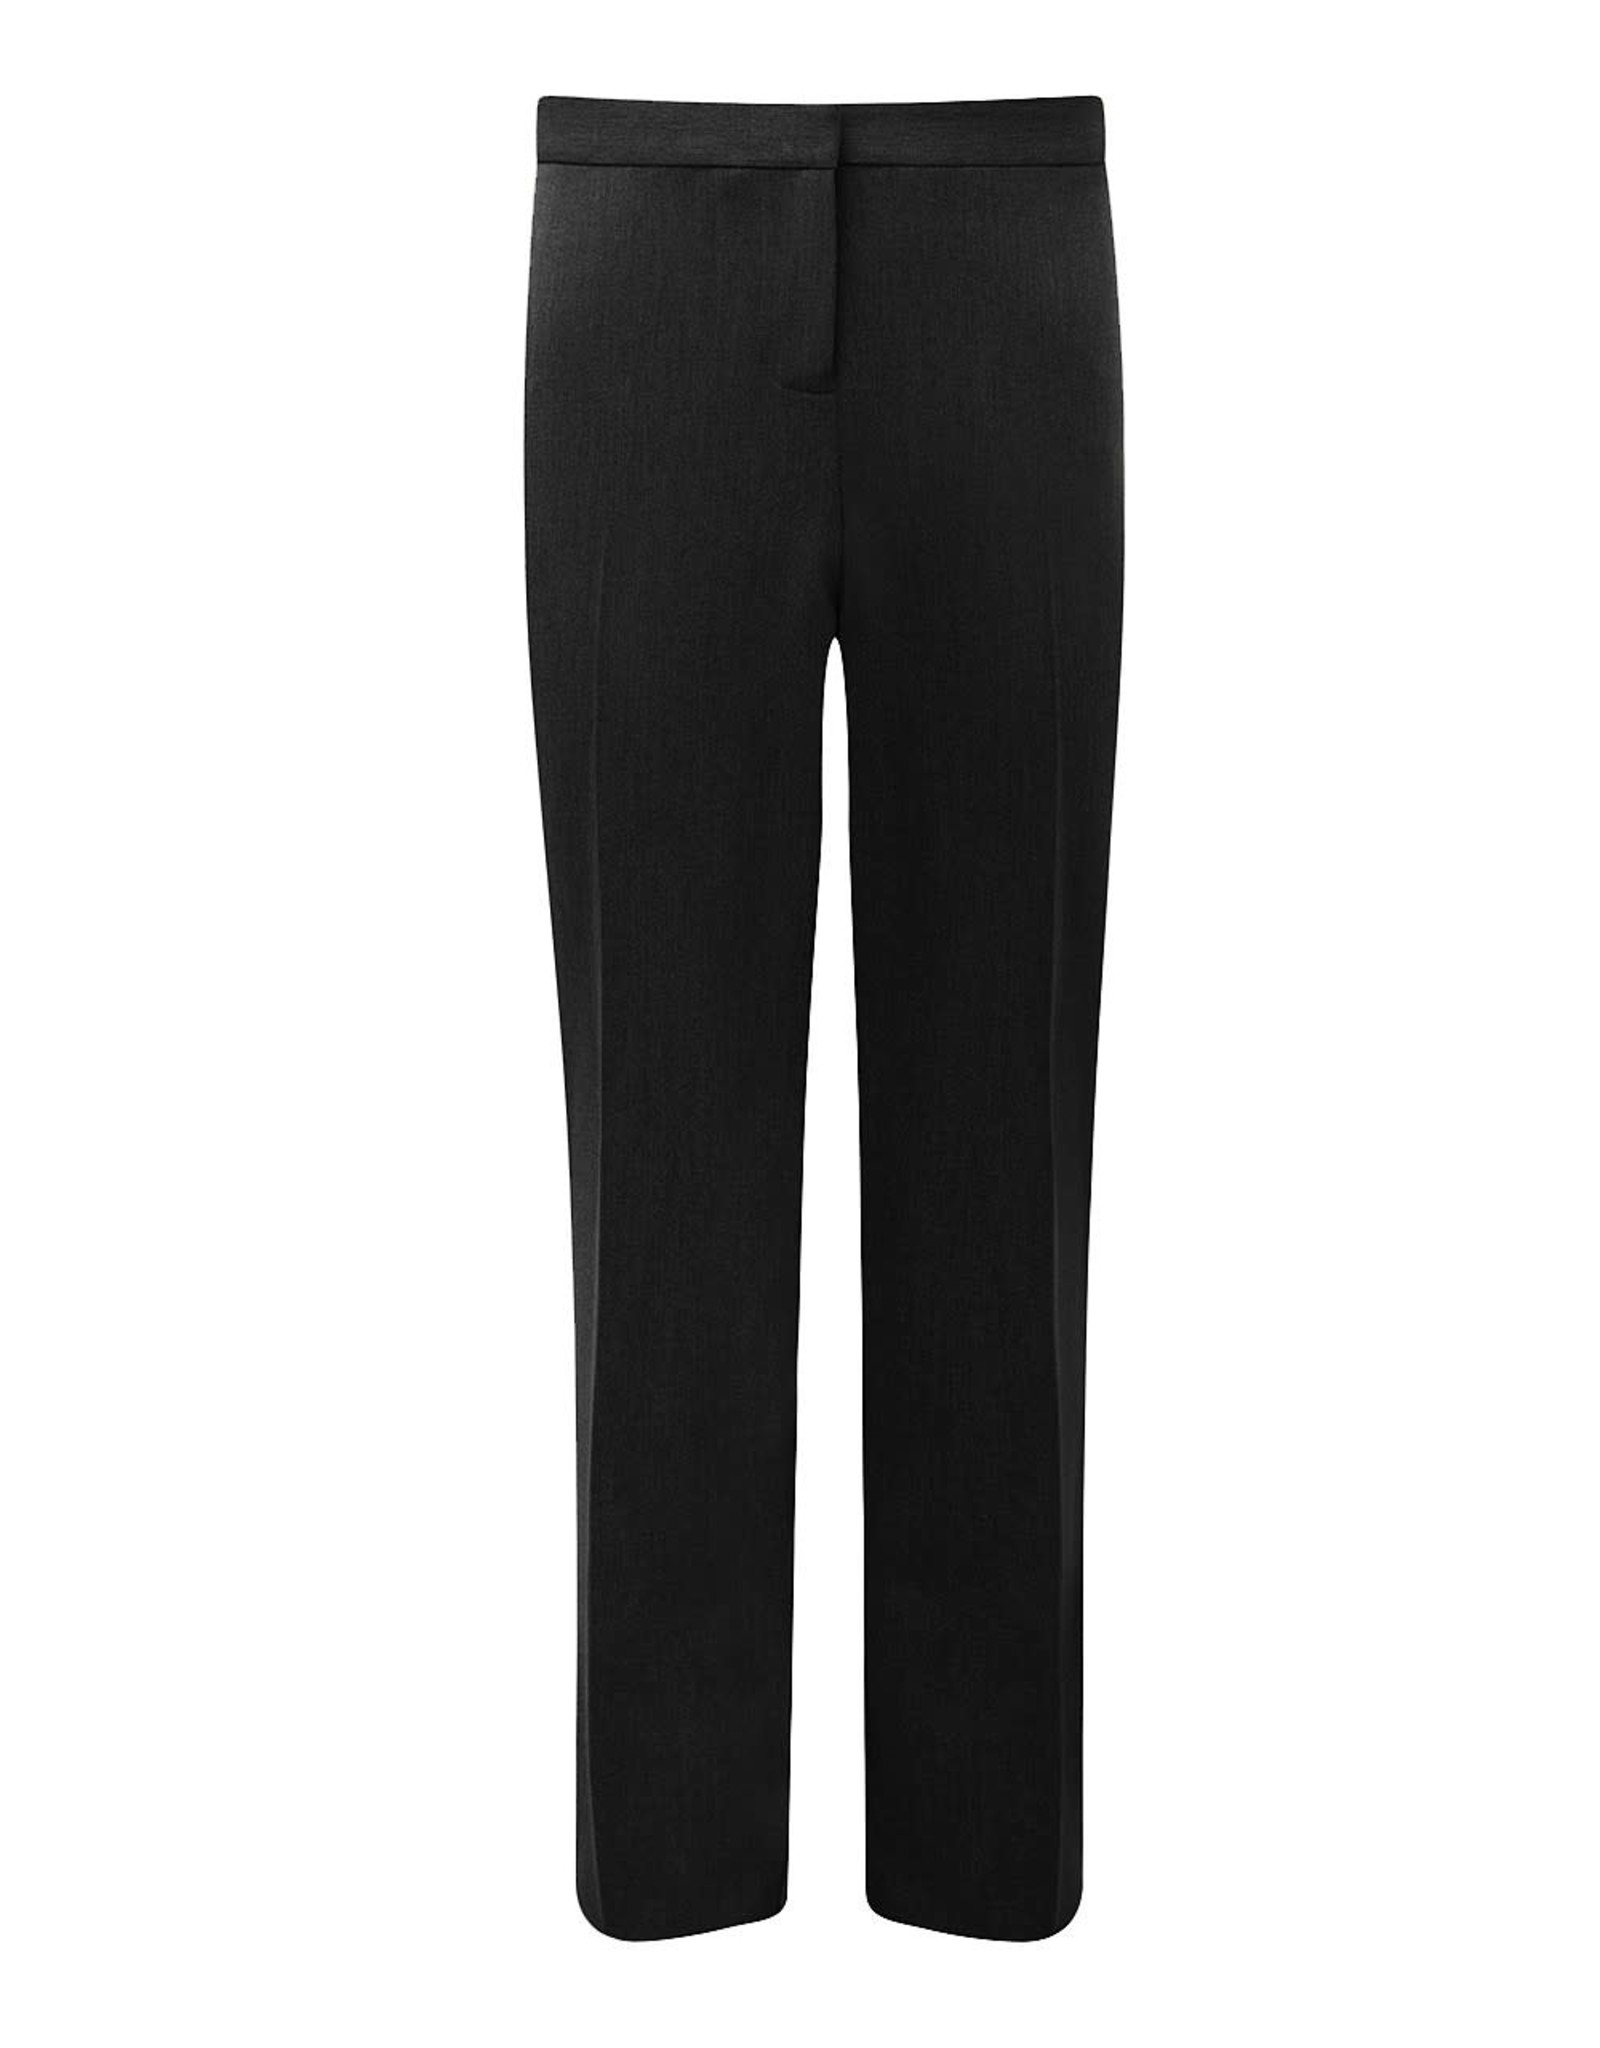 TRIMLEY Girls Trimley Trousers Adult Size - Nicholas Chamberlaine School